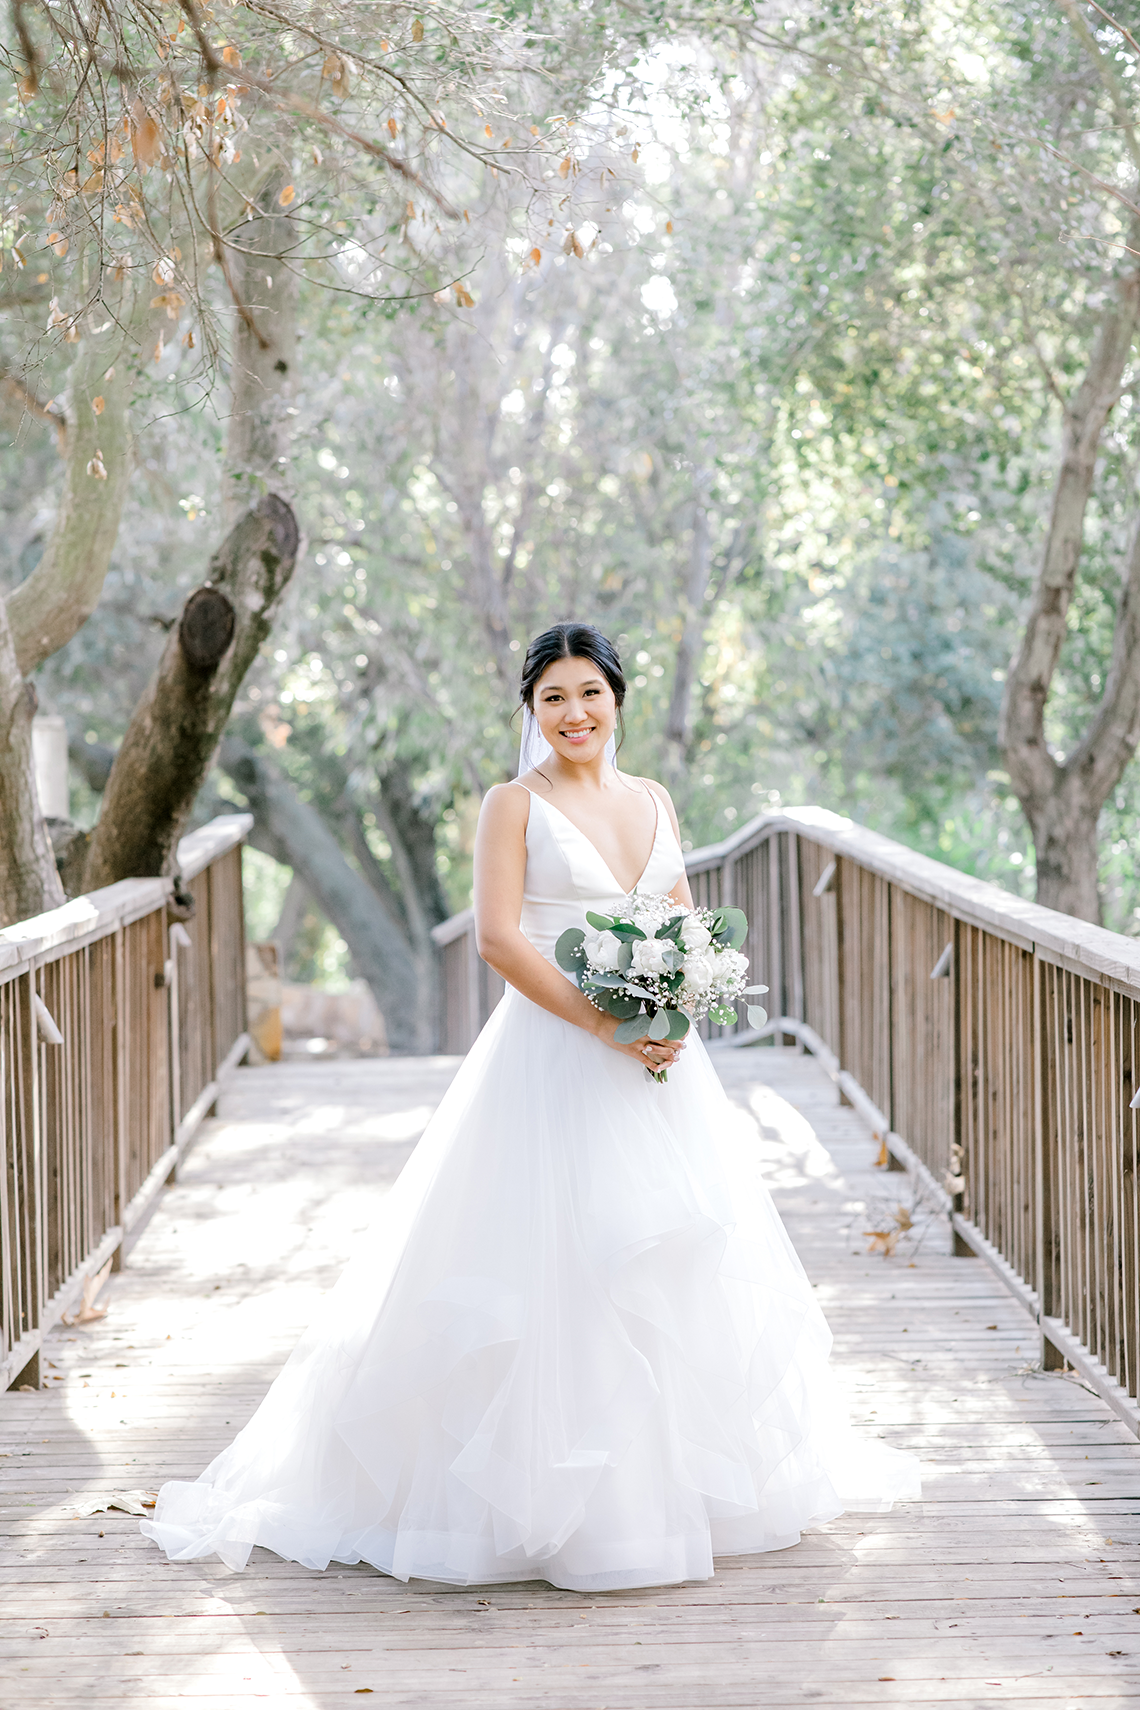 Rustic and Ethereal Calamigos Forest Wedding – Tracy Rinehart 44